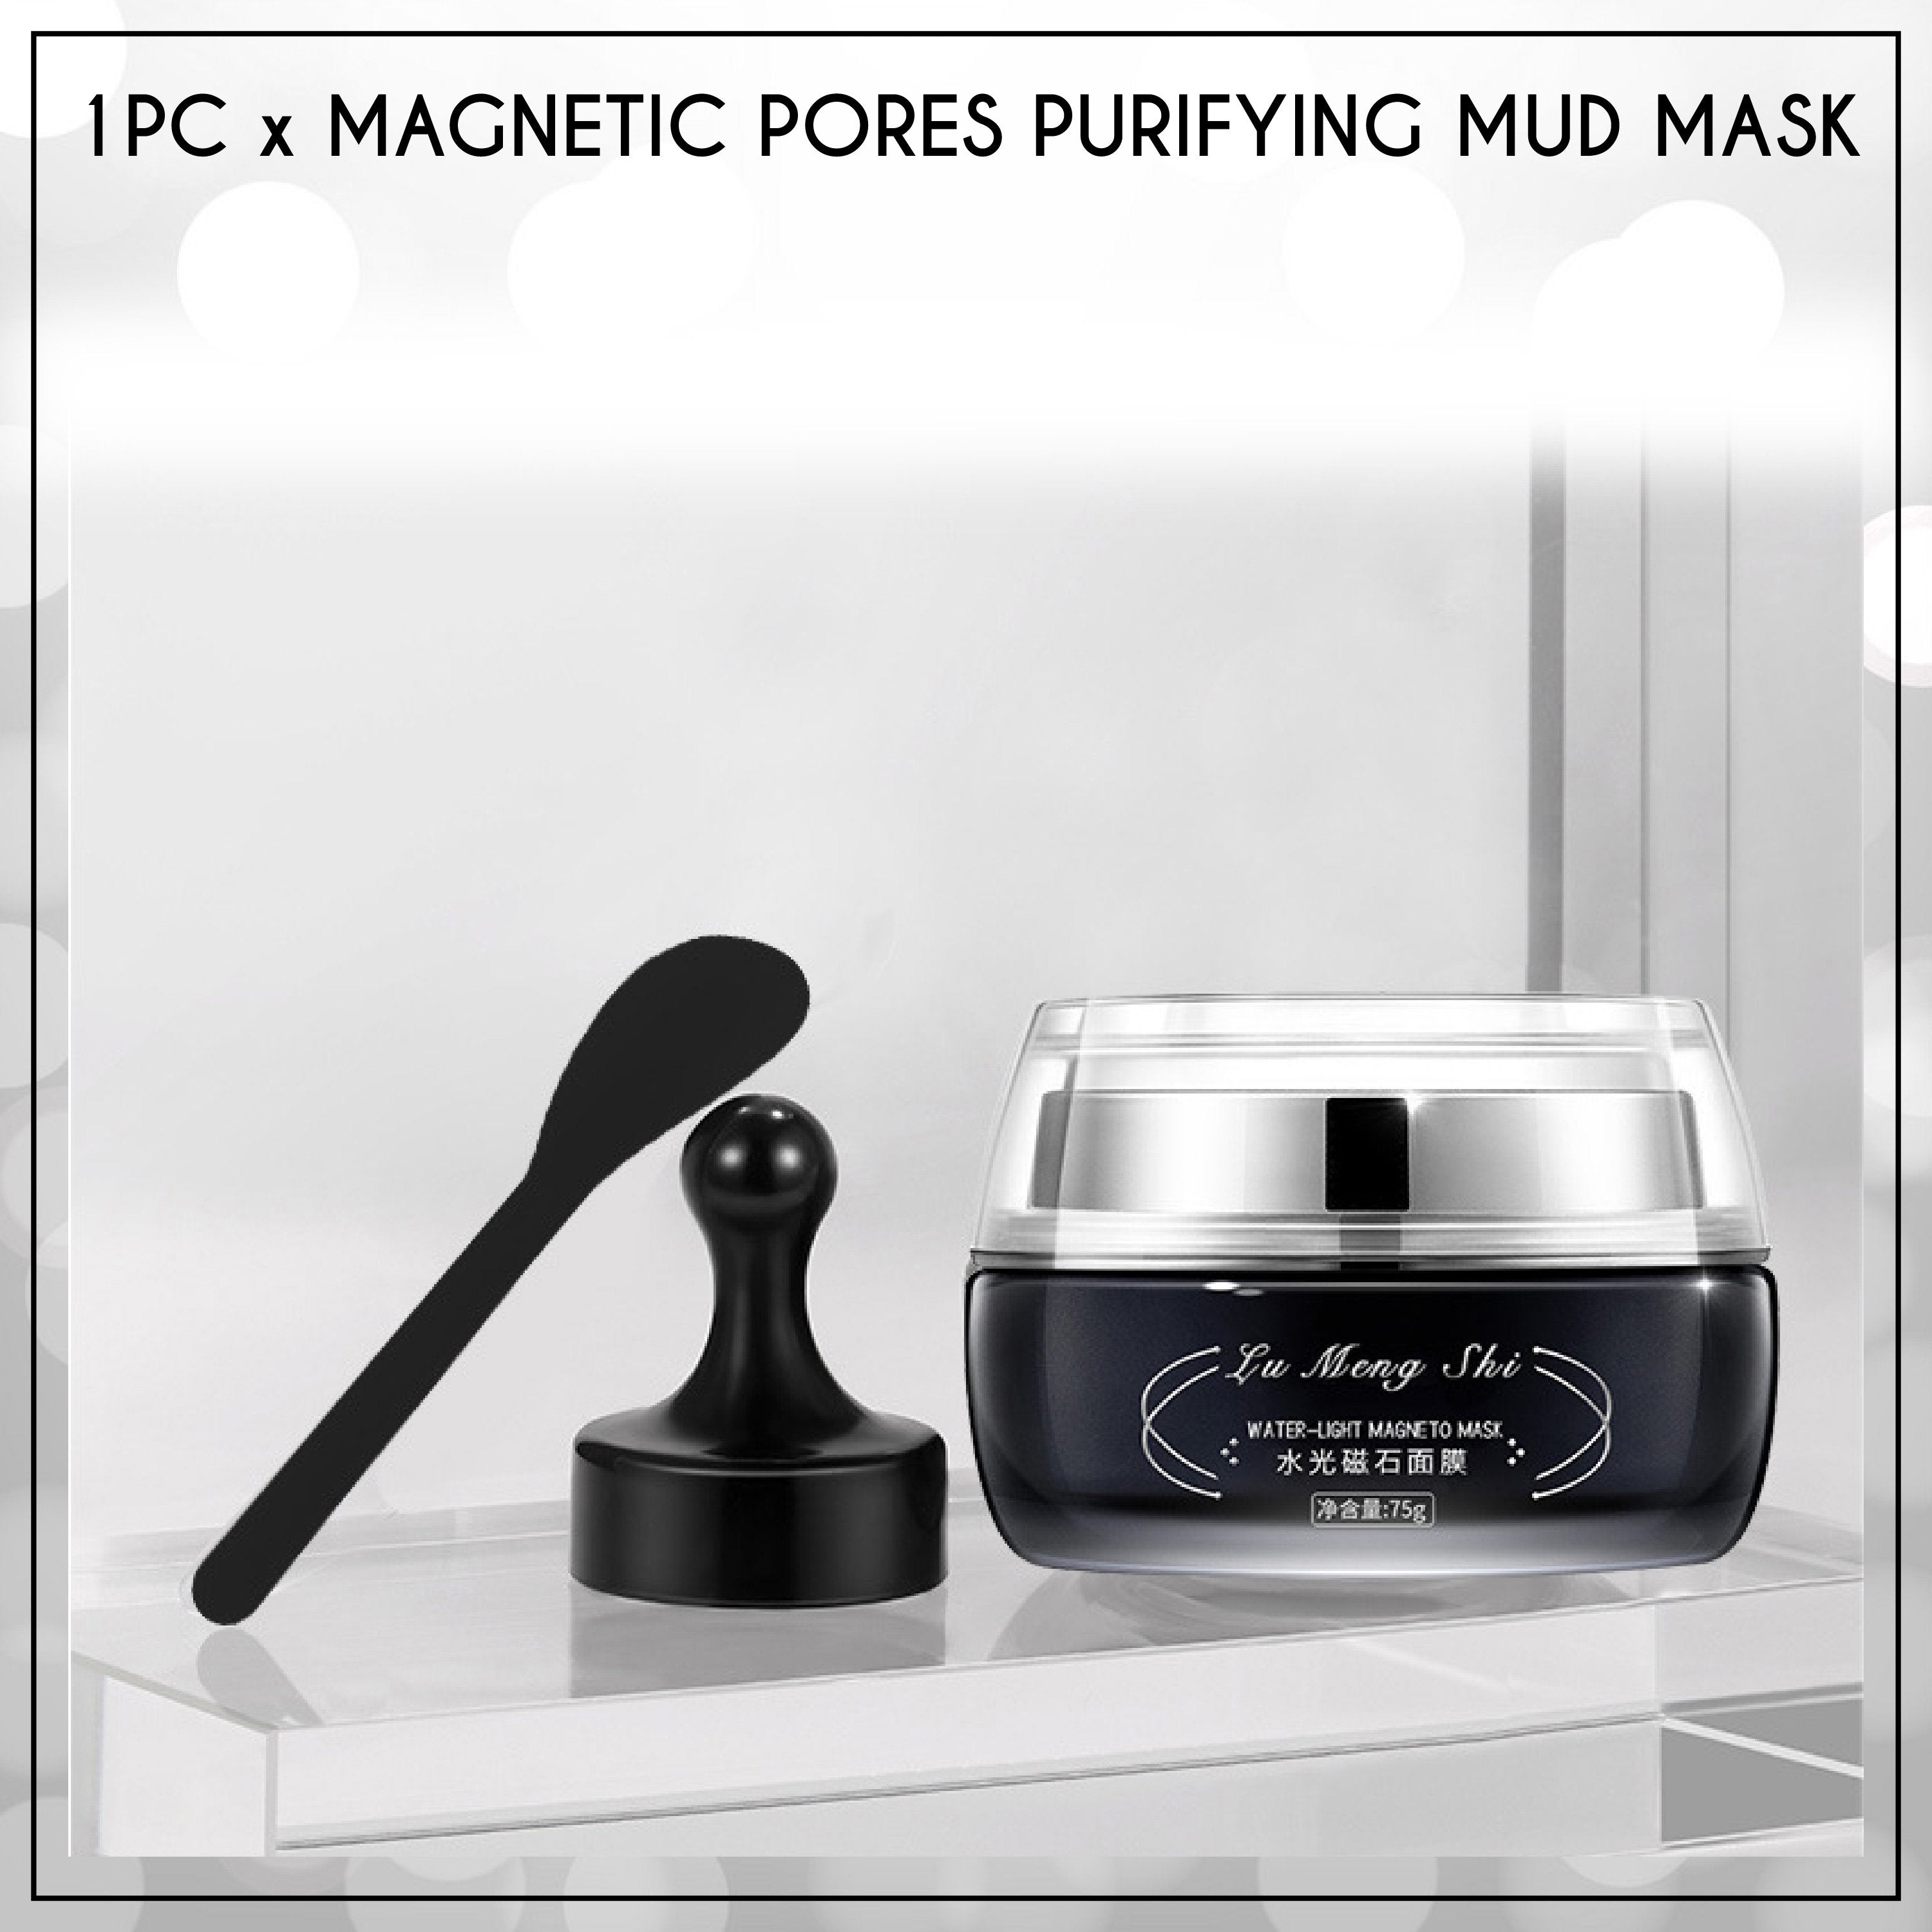 Magnetic Pores Purifying Mud Mask